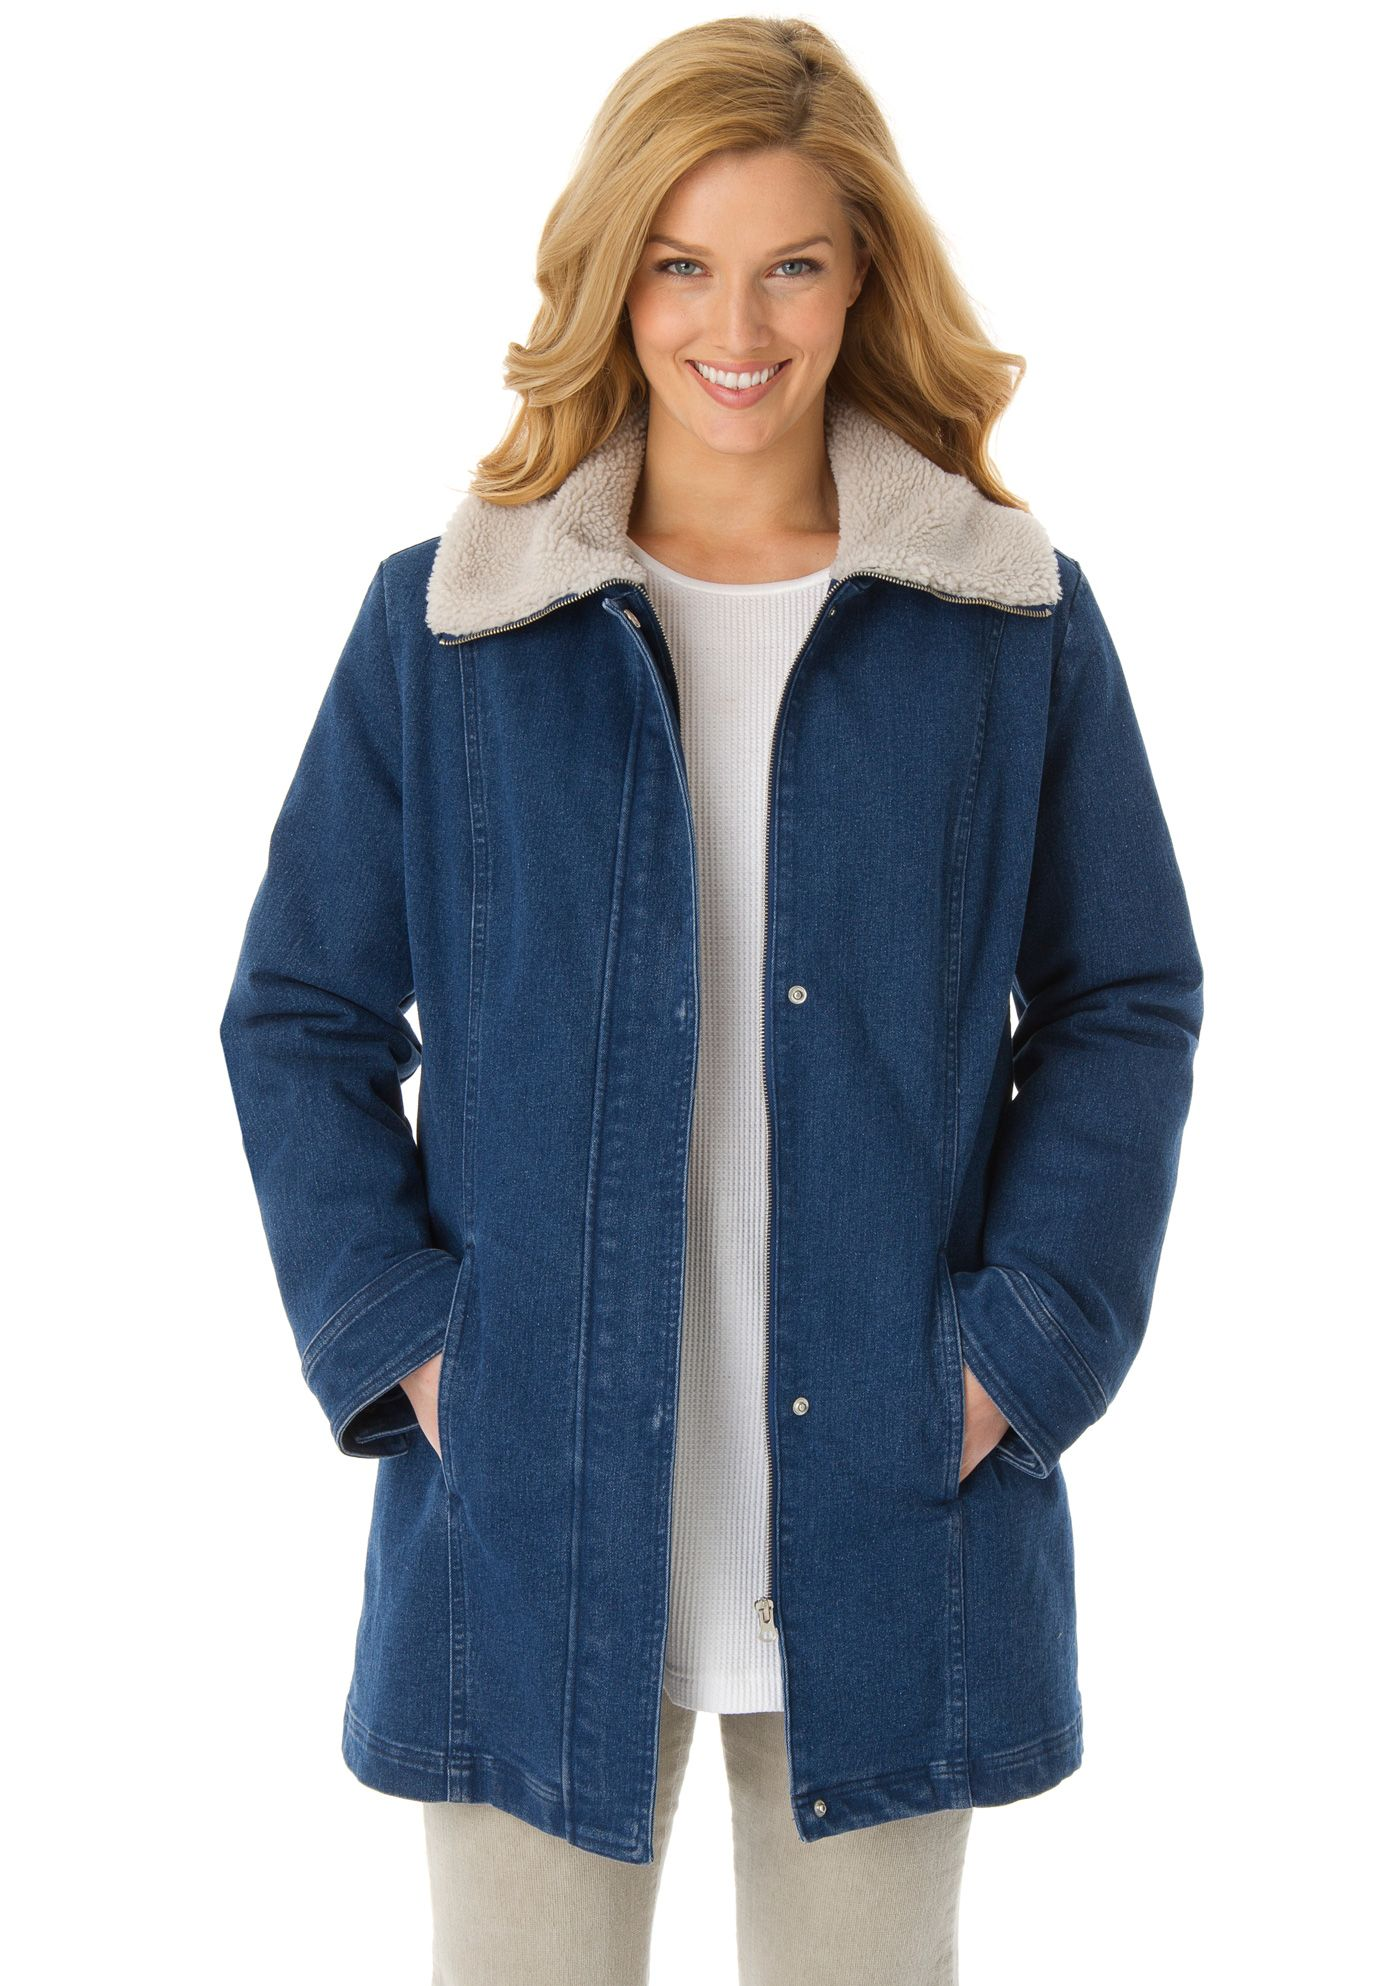 Quilt lined denim jacket with sherpa fleece wing collar overcoat